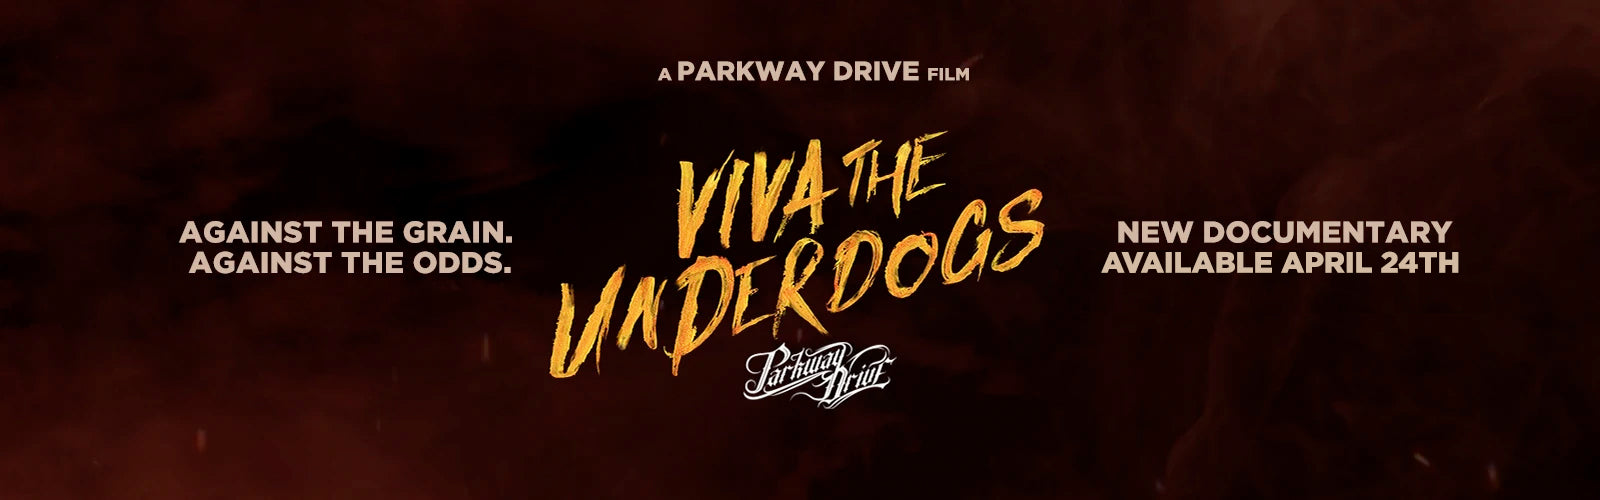 Viva The Underdogs | Documentary Available on April 24th